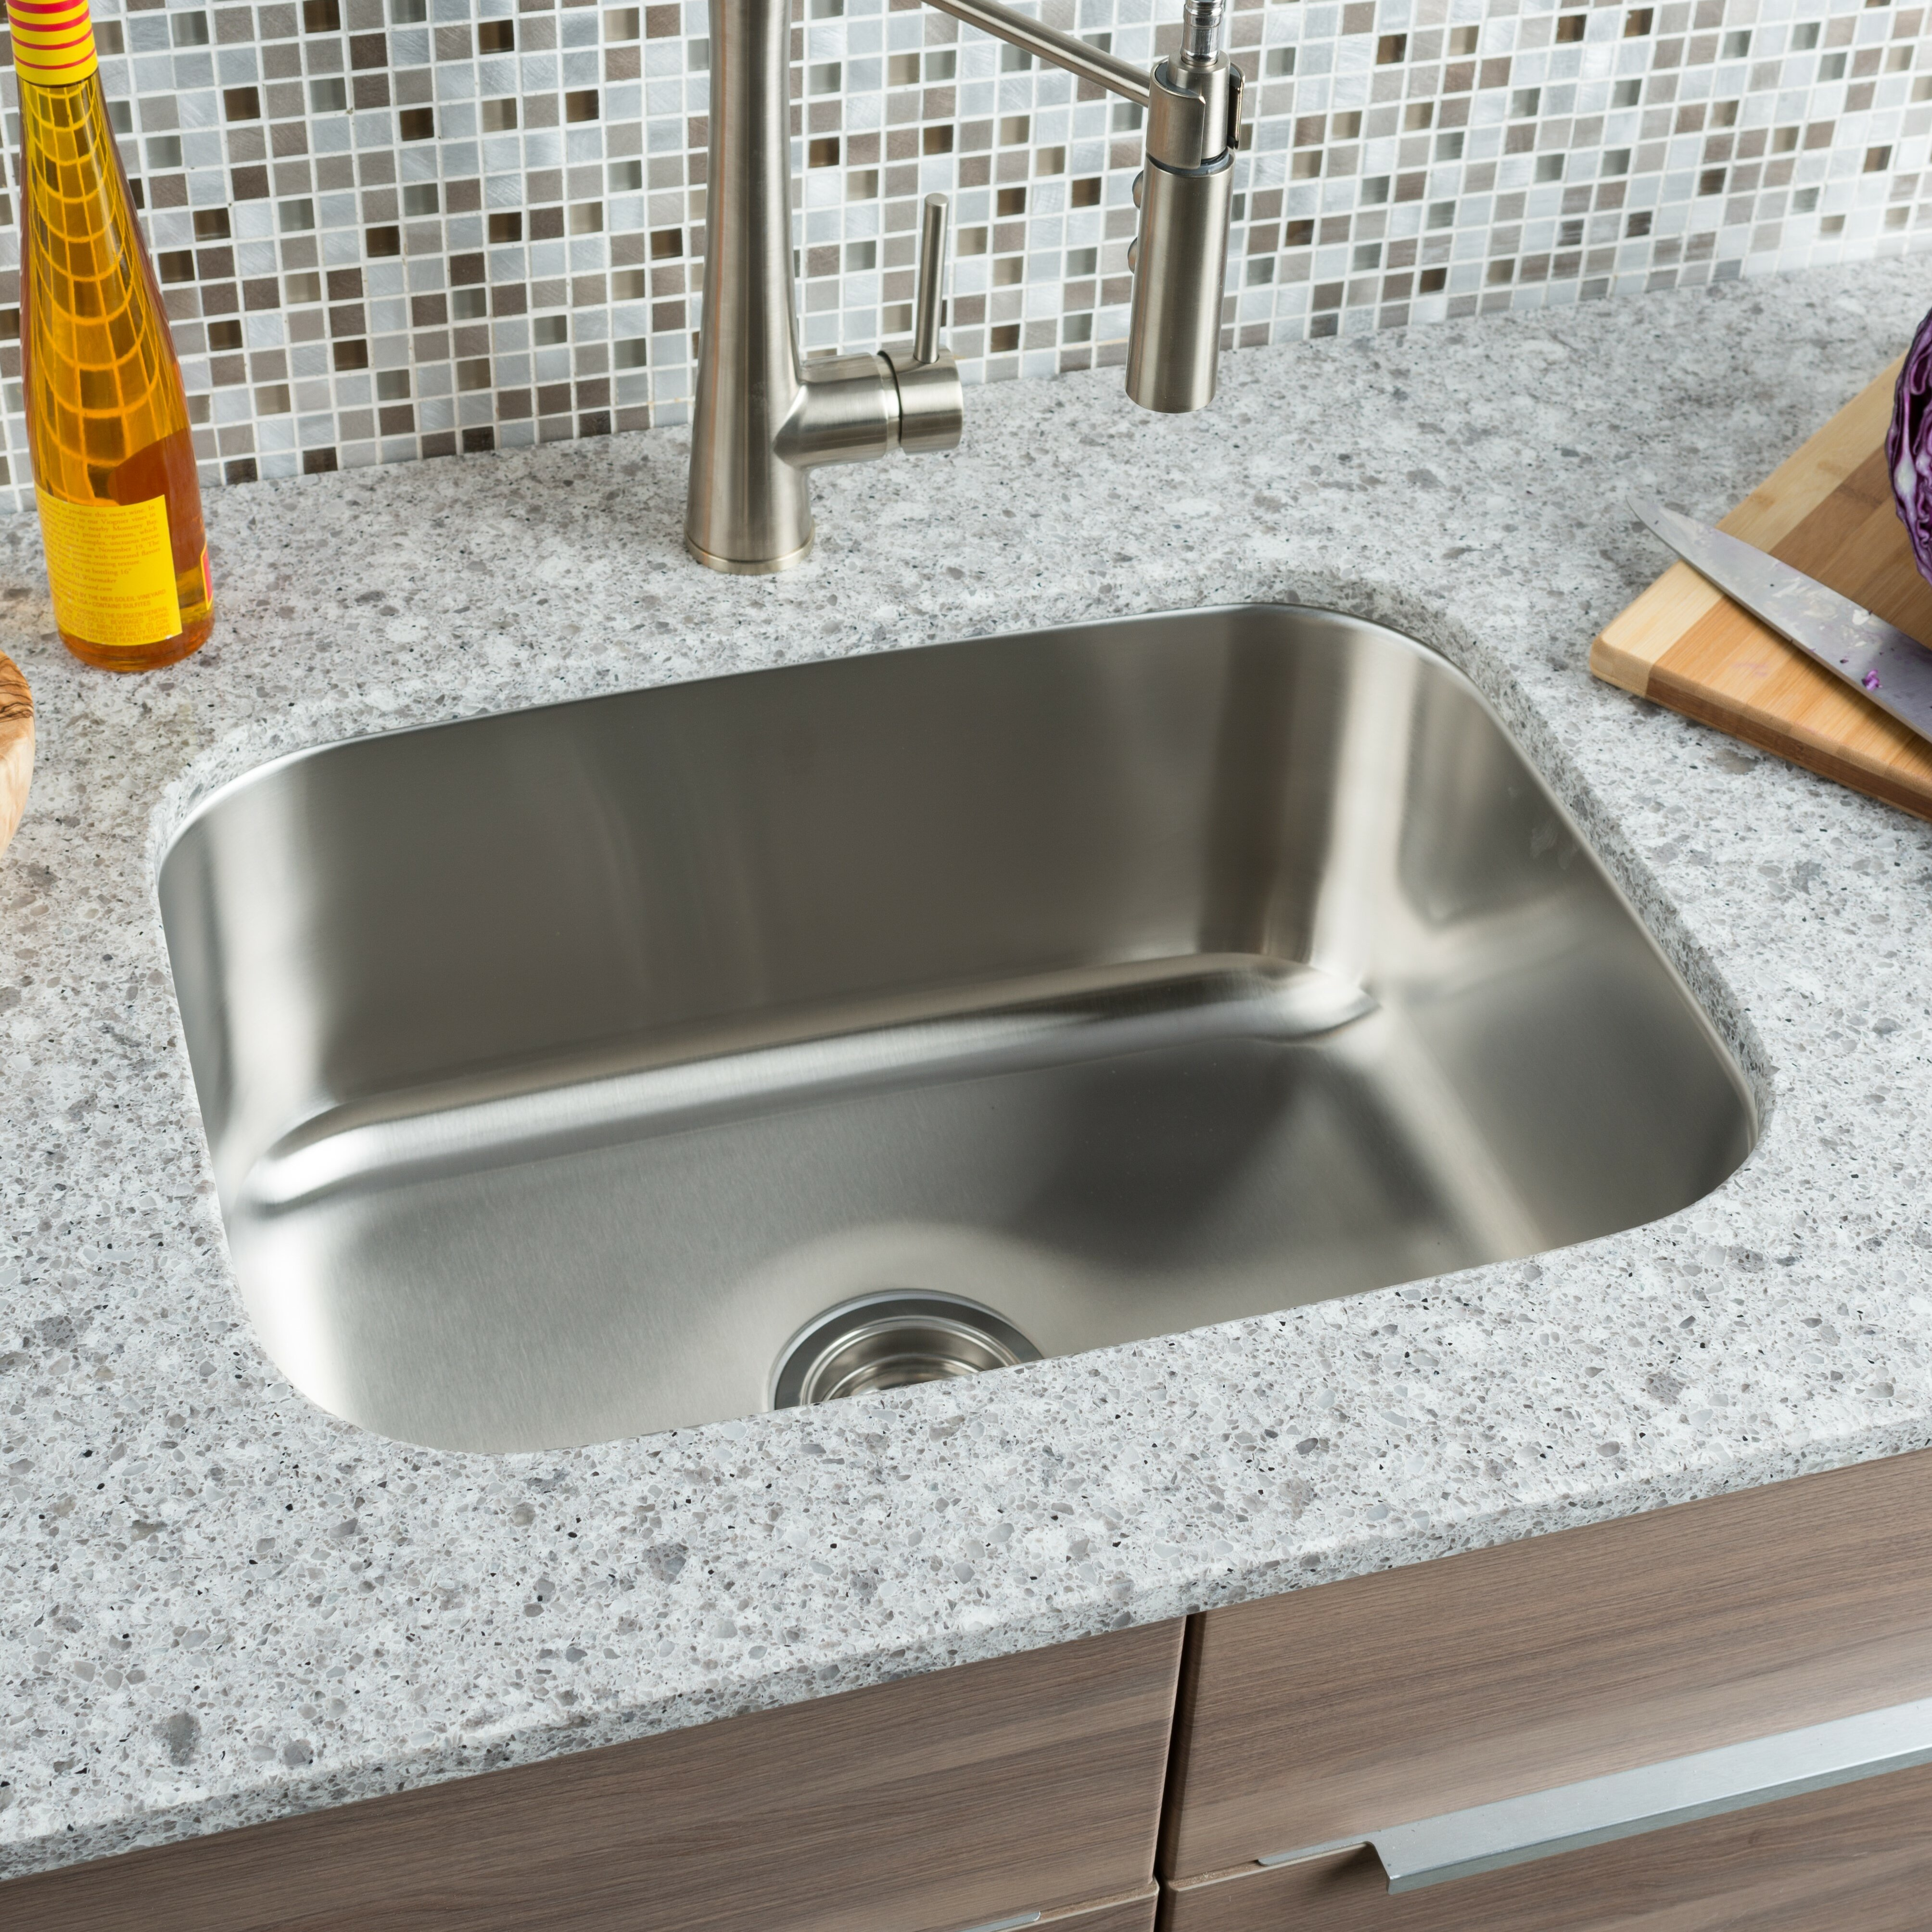 Granite Single Bowl Kitchen Sink Design10001000 Single Basin Kitchen Sink Blanco Diamond Dual